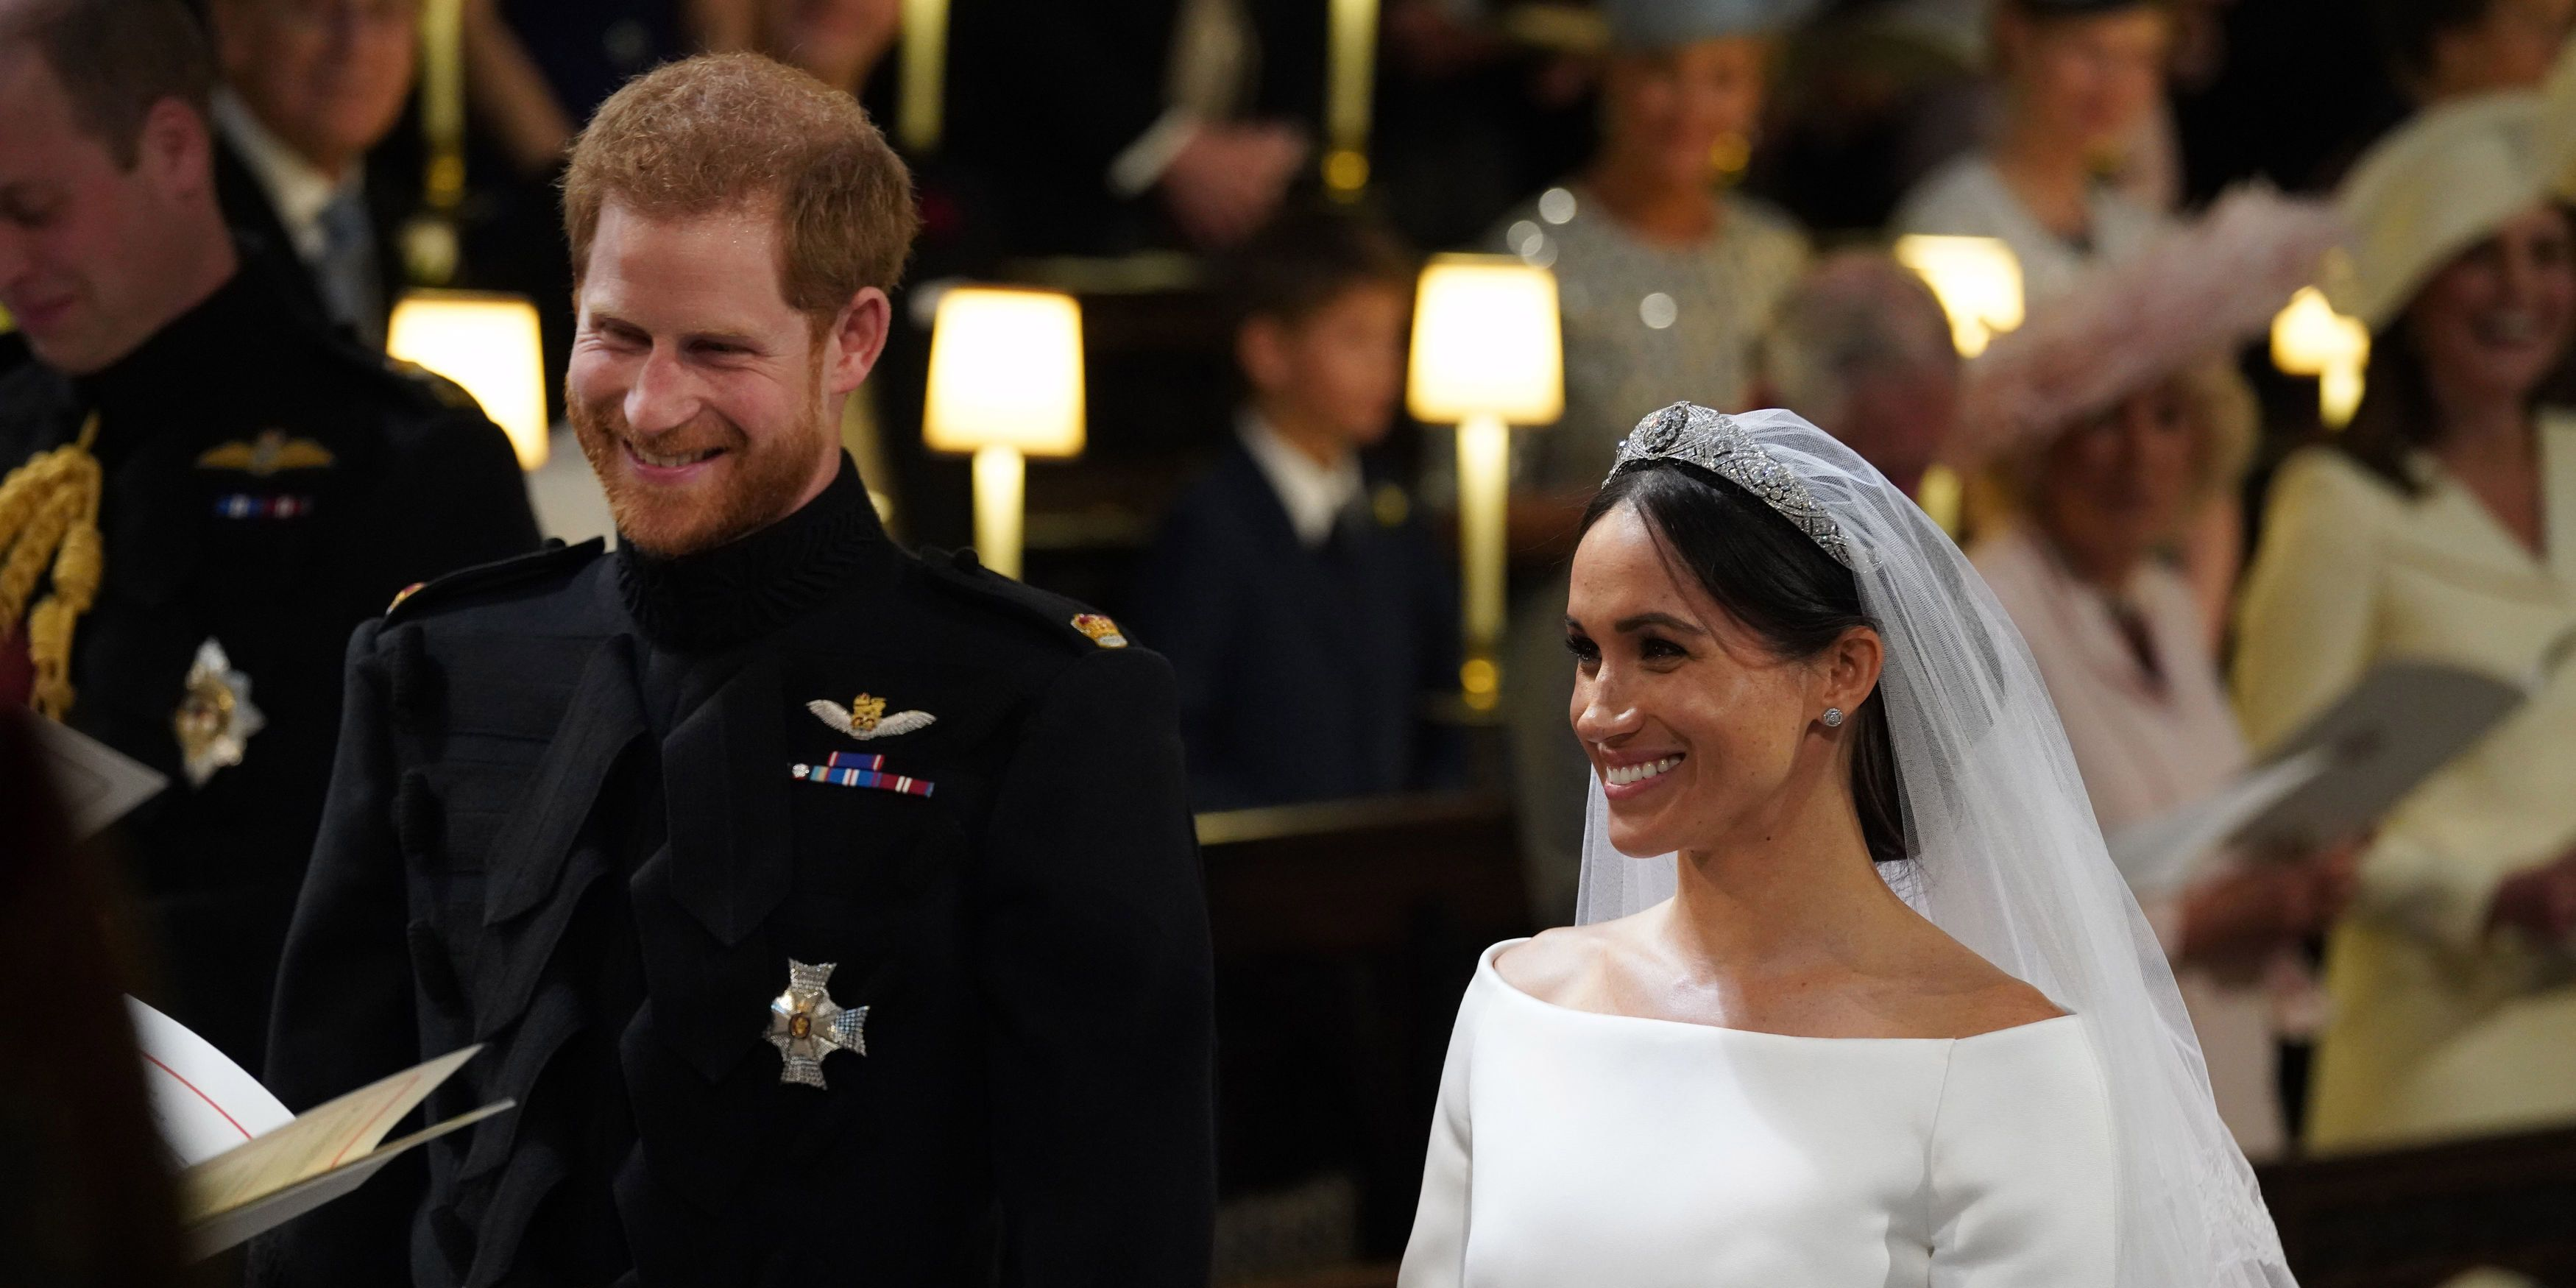 Prince Harry and Meghan Markle stand at the altar during their wedding in St George's Chapel at Windsor Castle